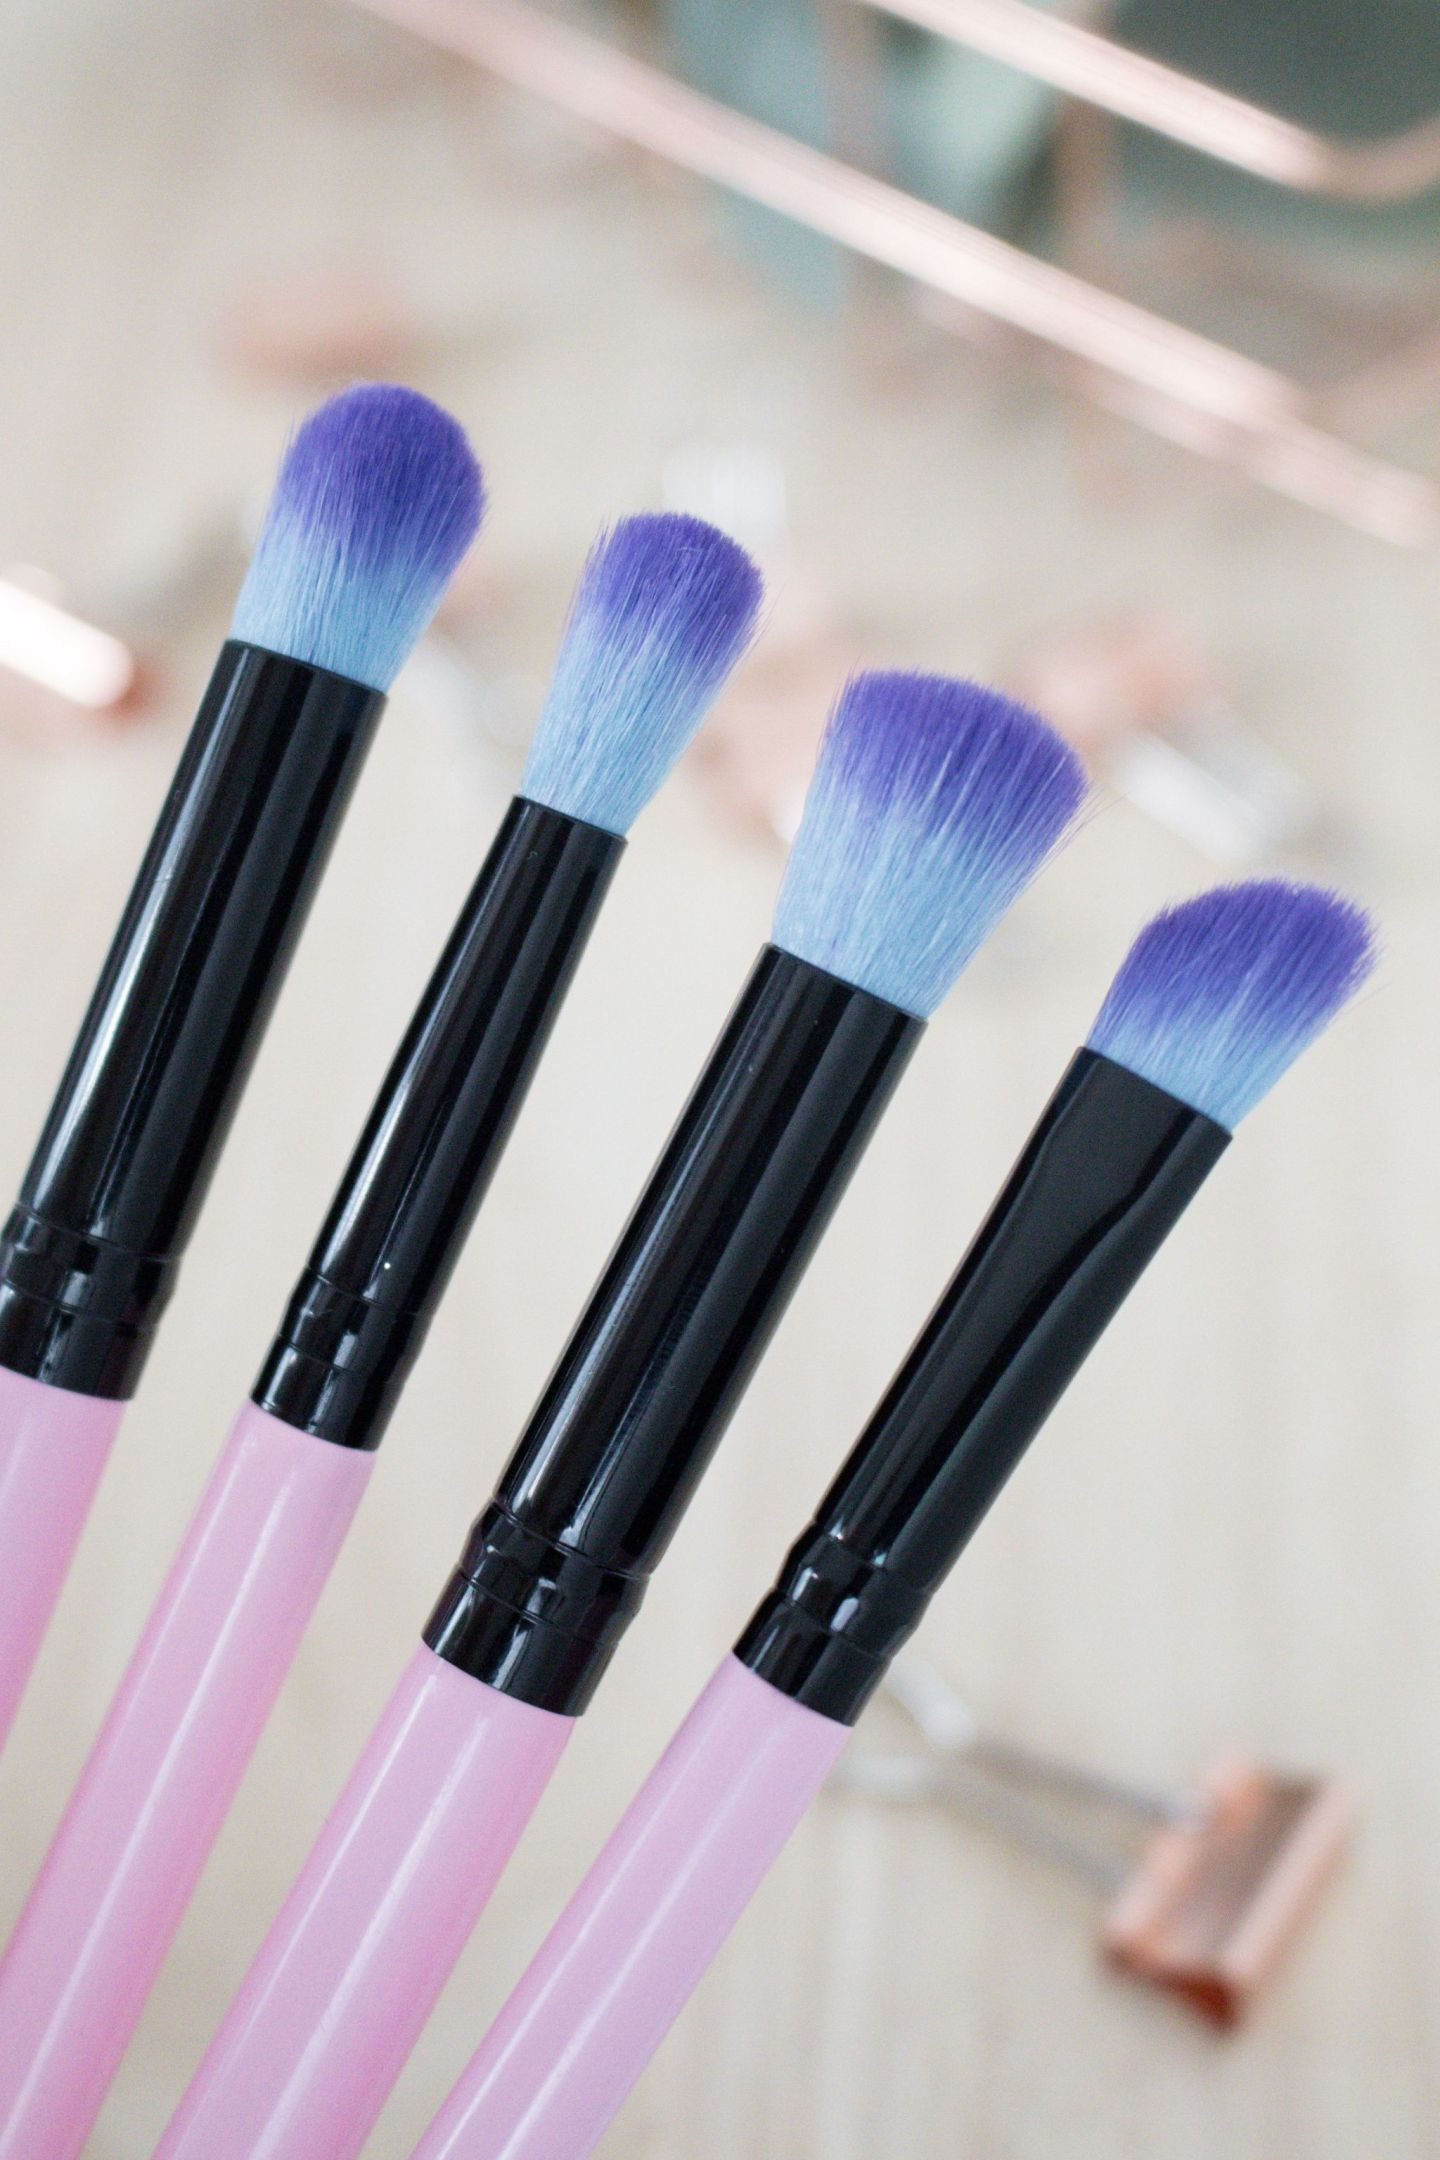 Spectrum Millennial Pink Blending Brushes